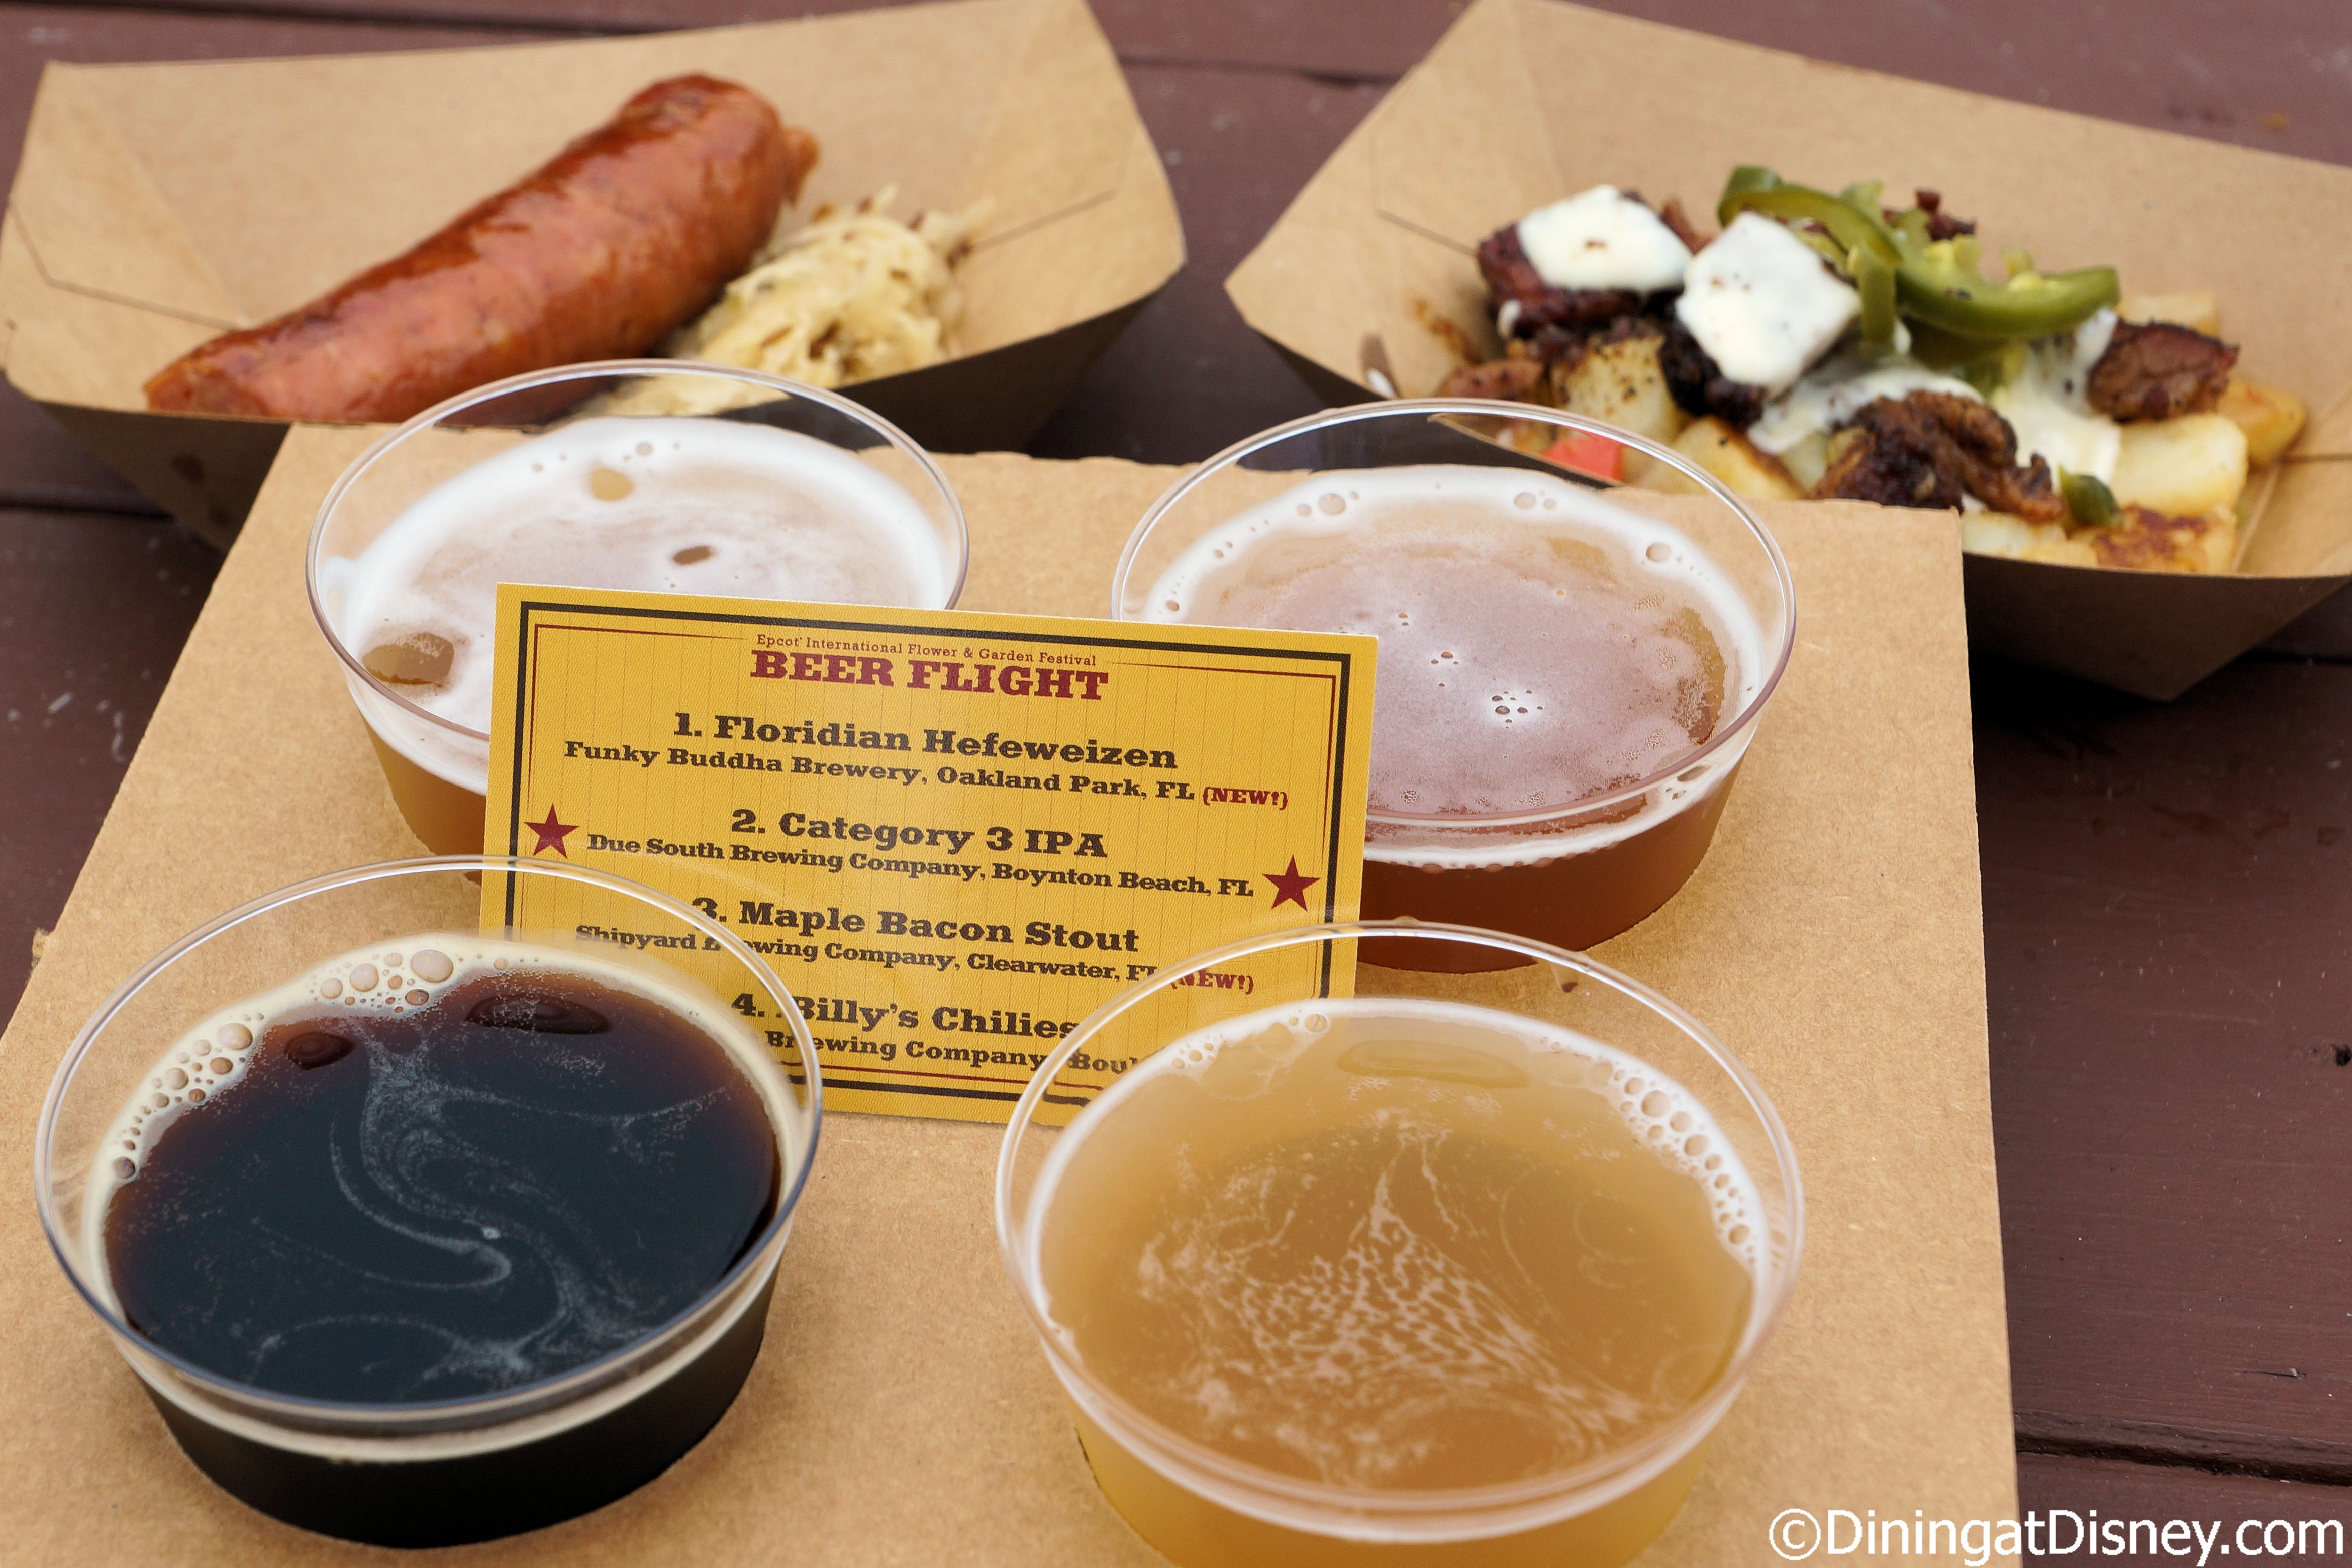 Epcot Flower And Garden Festival Will Be 90 Days In 2016 - with Flower And Garden Festival Food 2016